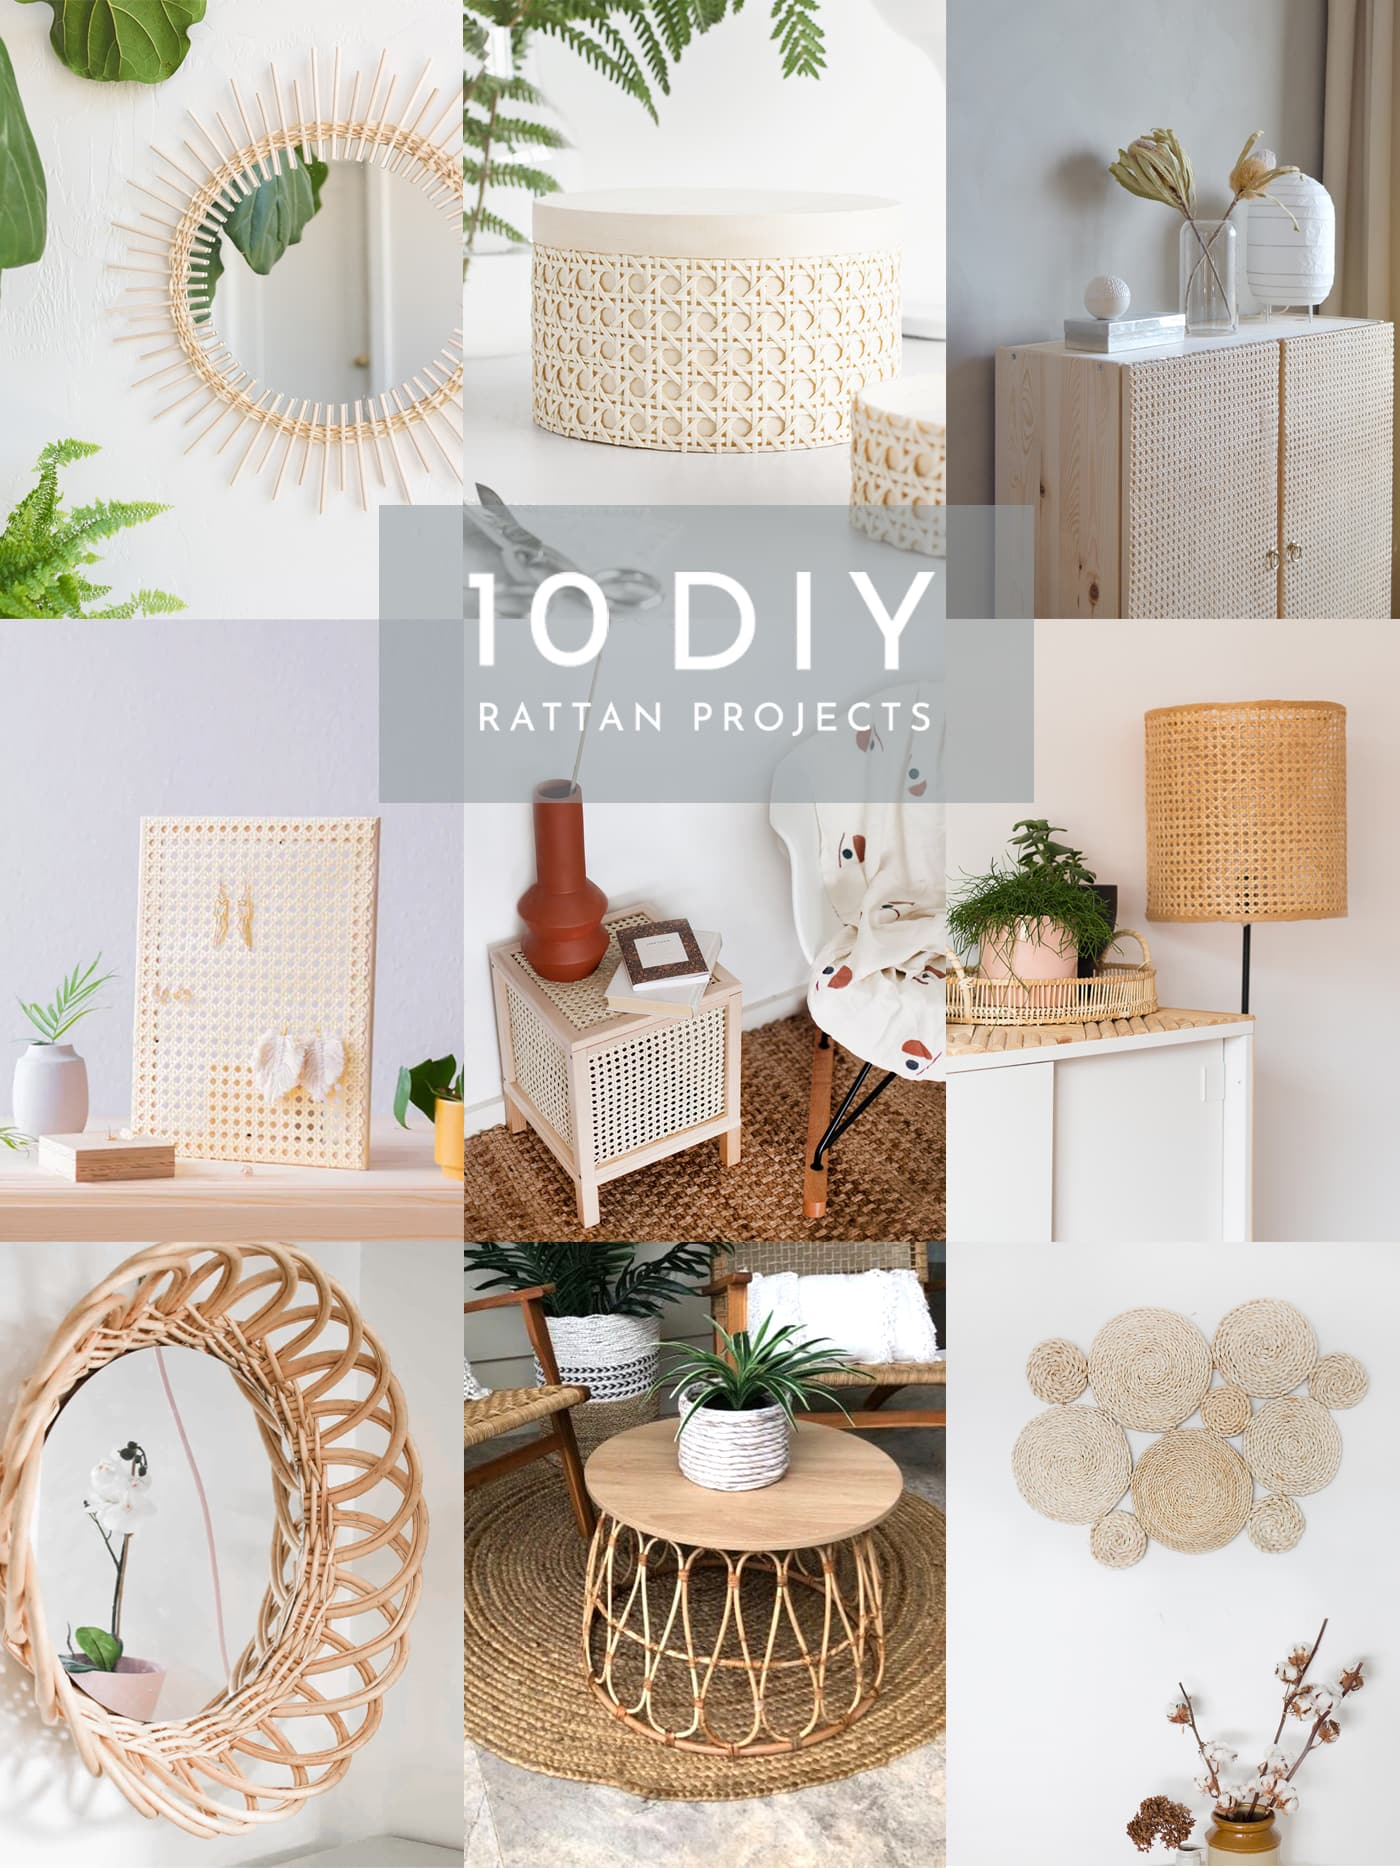 10 DIY Rattan Projects To Try